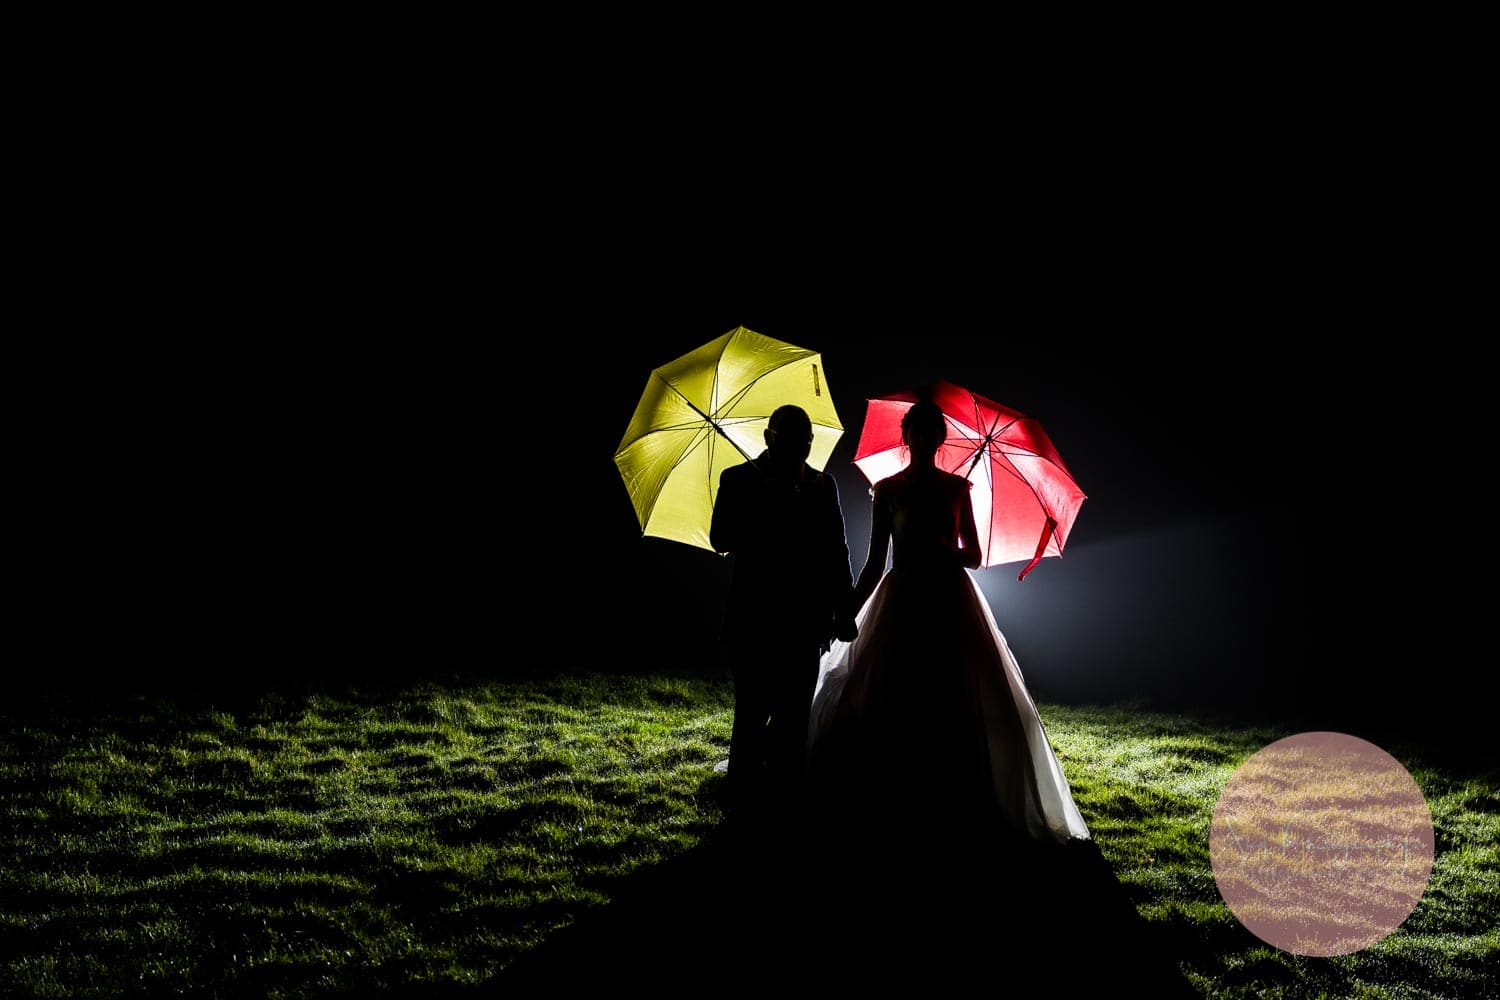 Friends wedding umbrella night photo